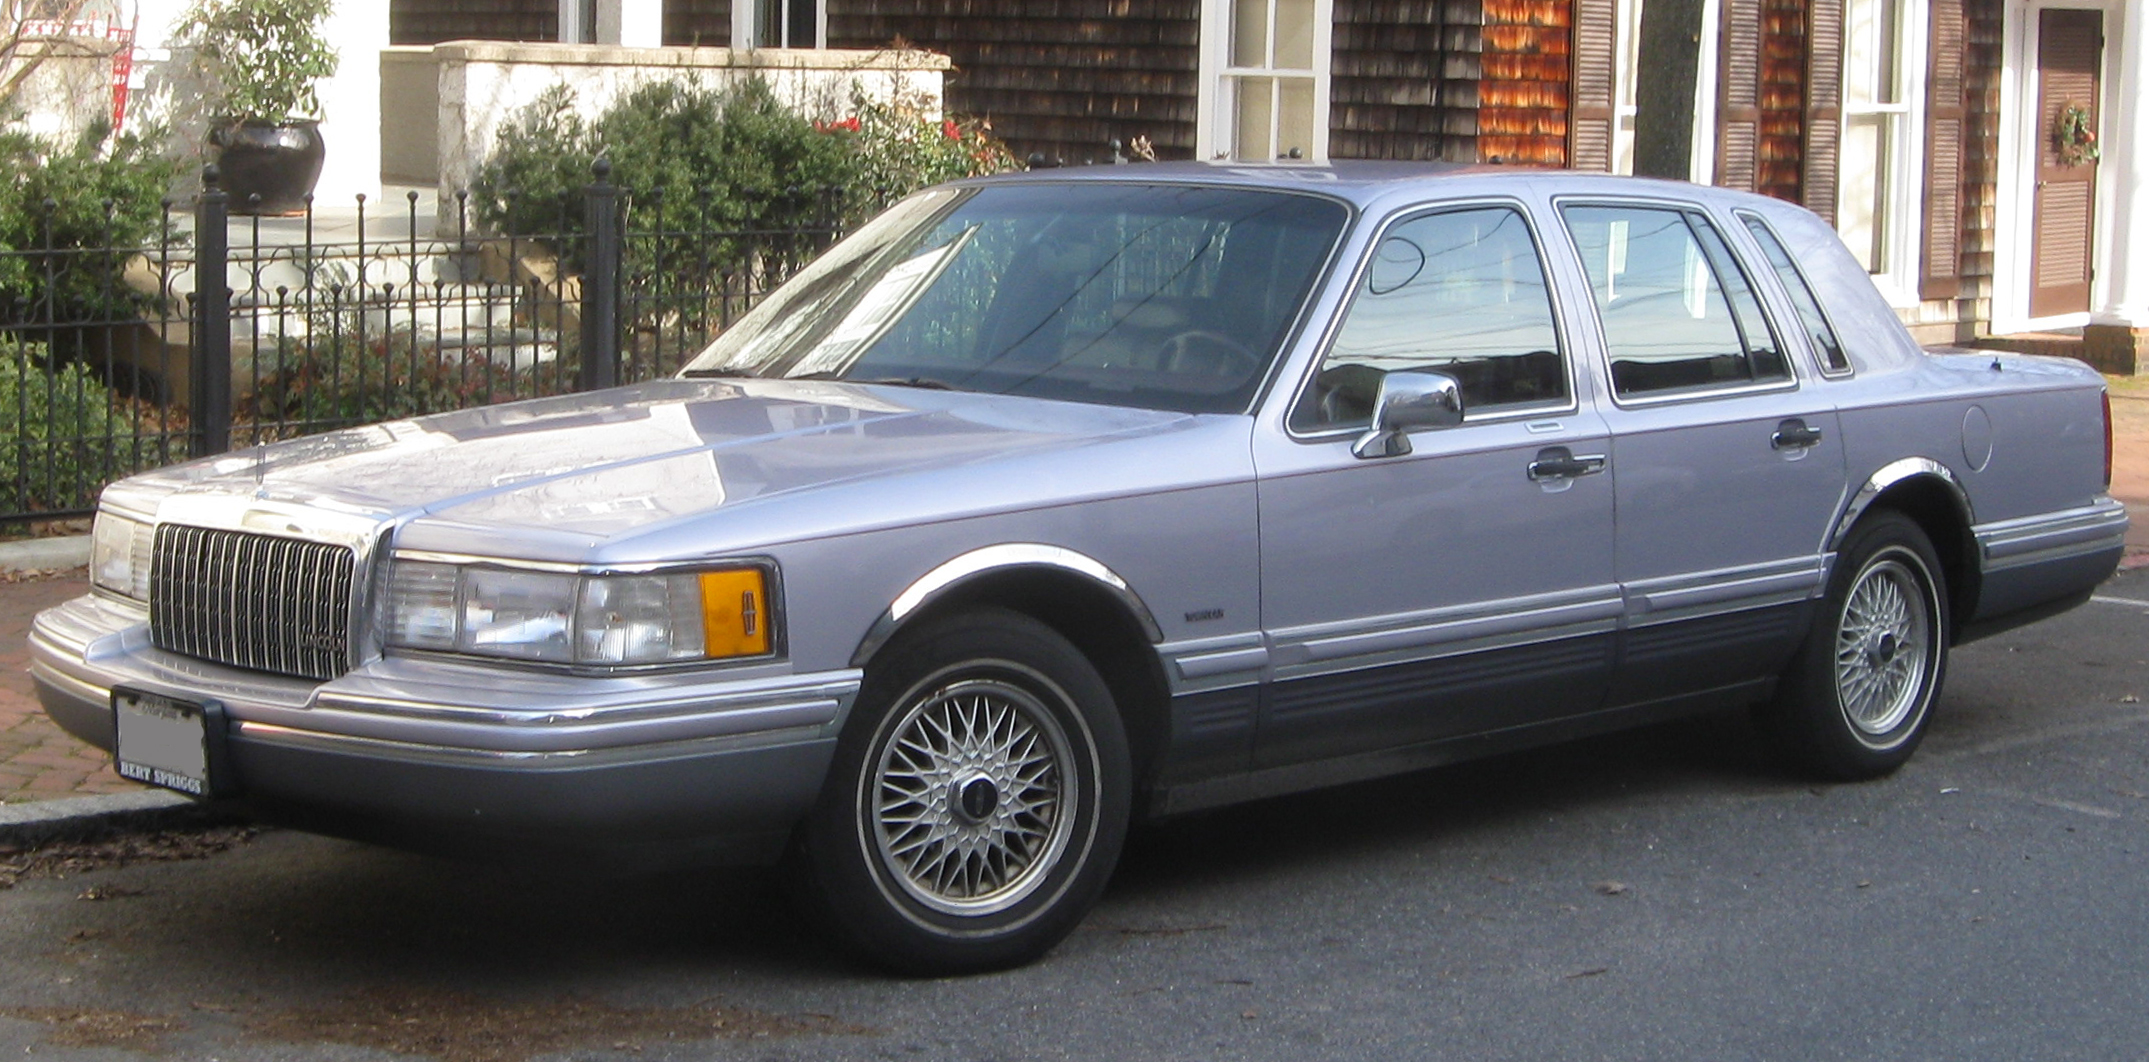 1990 Lincoln Town Car Image 9